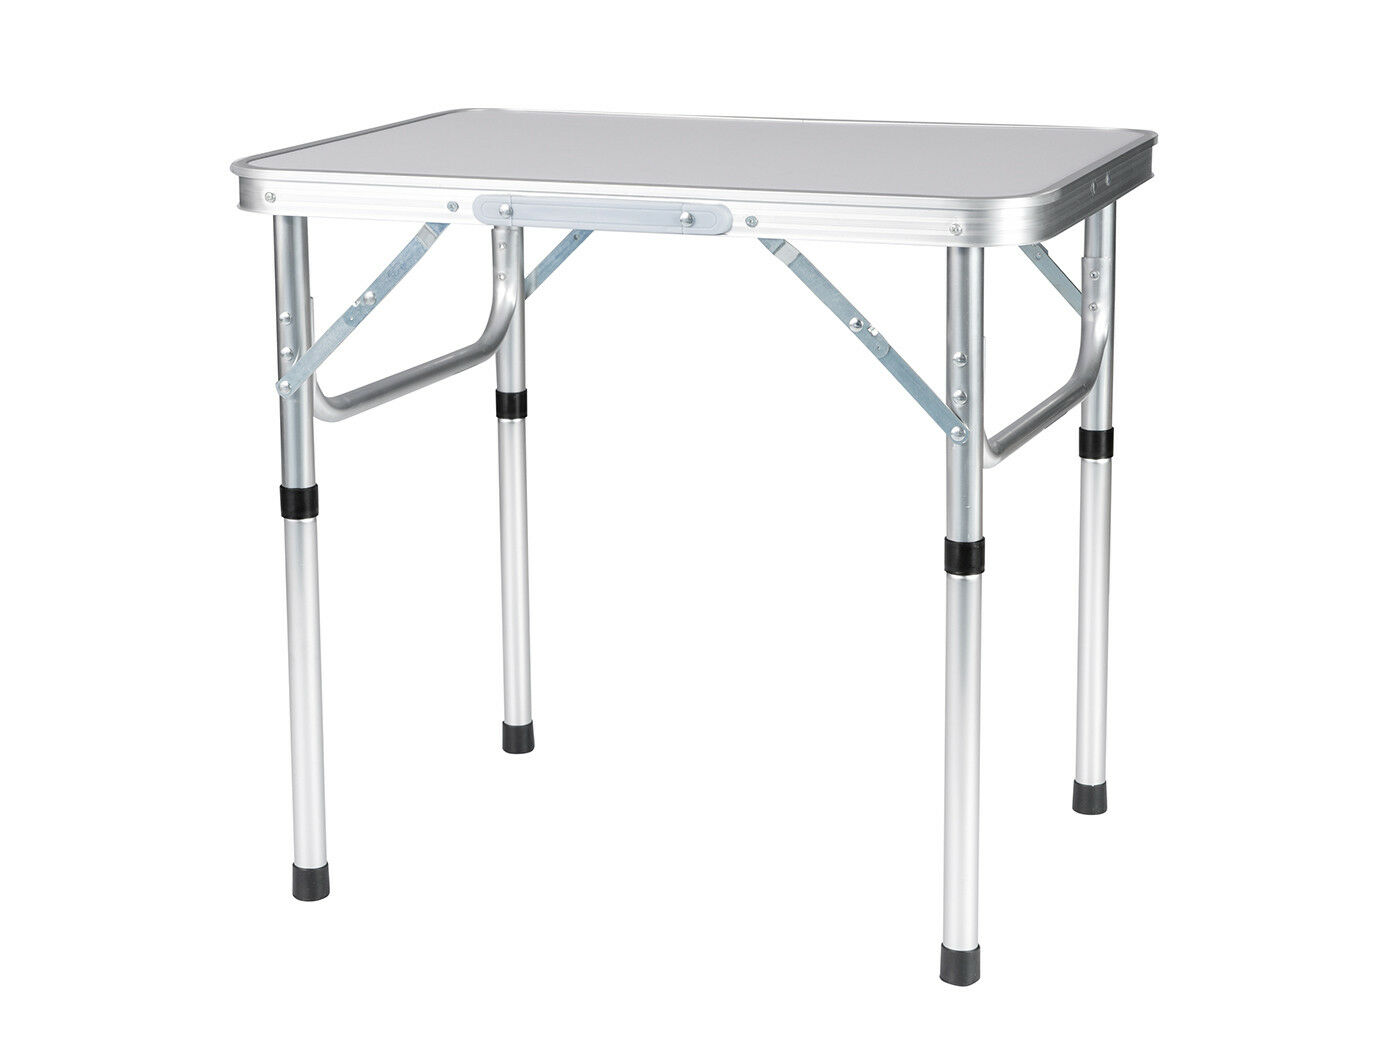 Portable Folding Table Indoor Outdoor Camping Picnic Utility Table Aluminum